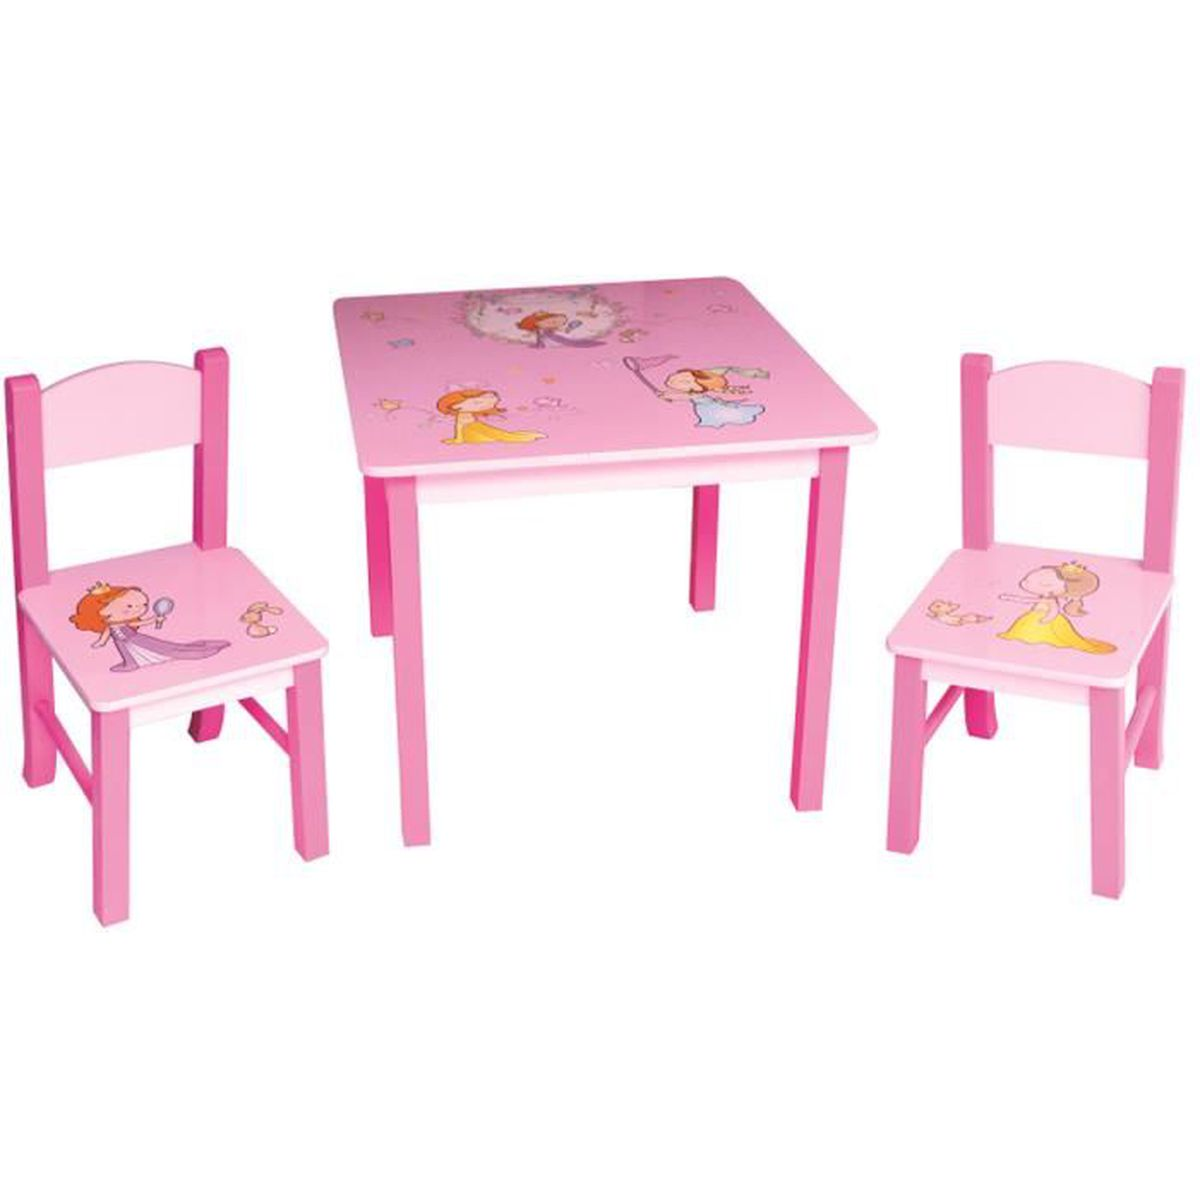 ensemble table et 2 chaises pour enfant en bois coloris rose motif princesse achat vente. Black Bedroom Furniture Sets. Home Design Ideas